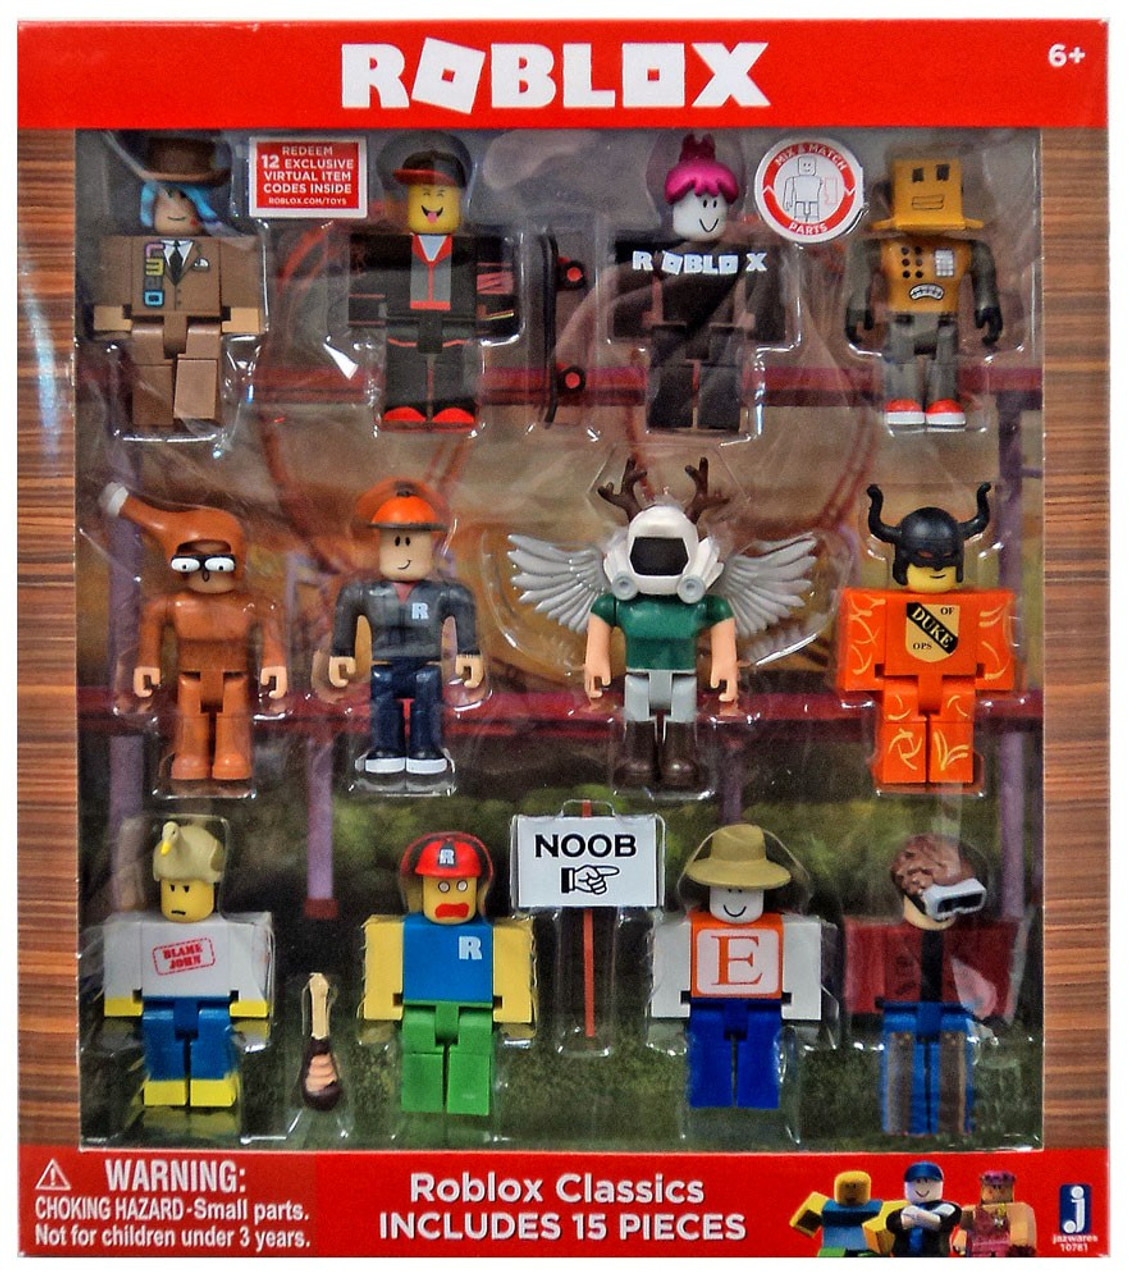 How To Use Roblox Toy Codes Hack Robux Cheat Engine 61 - reedem roblox toy codecom